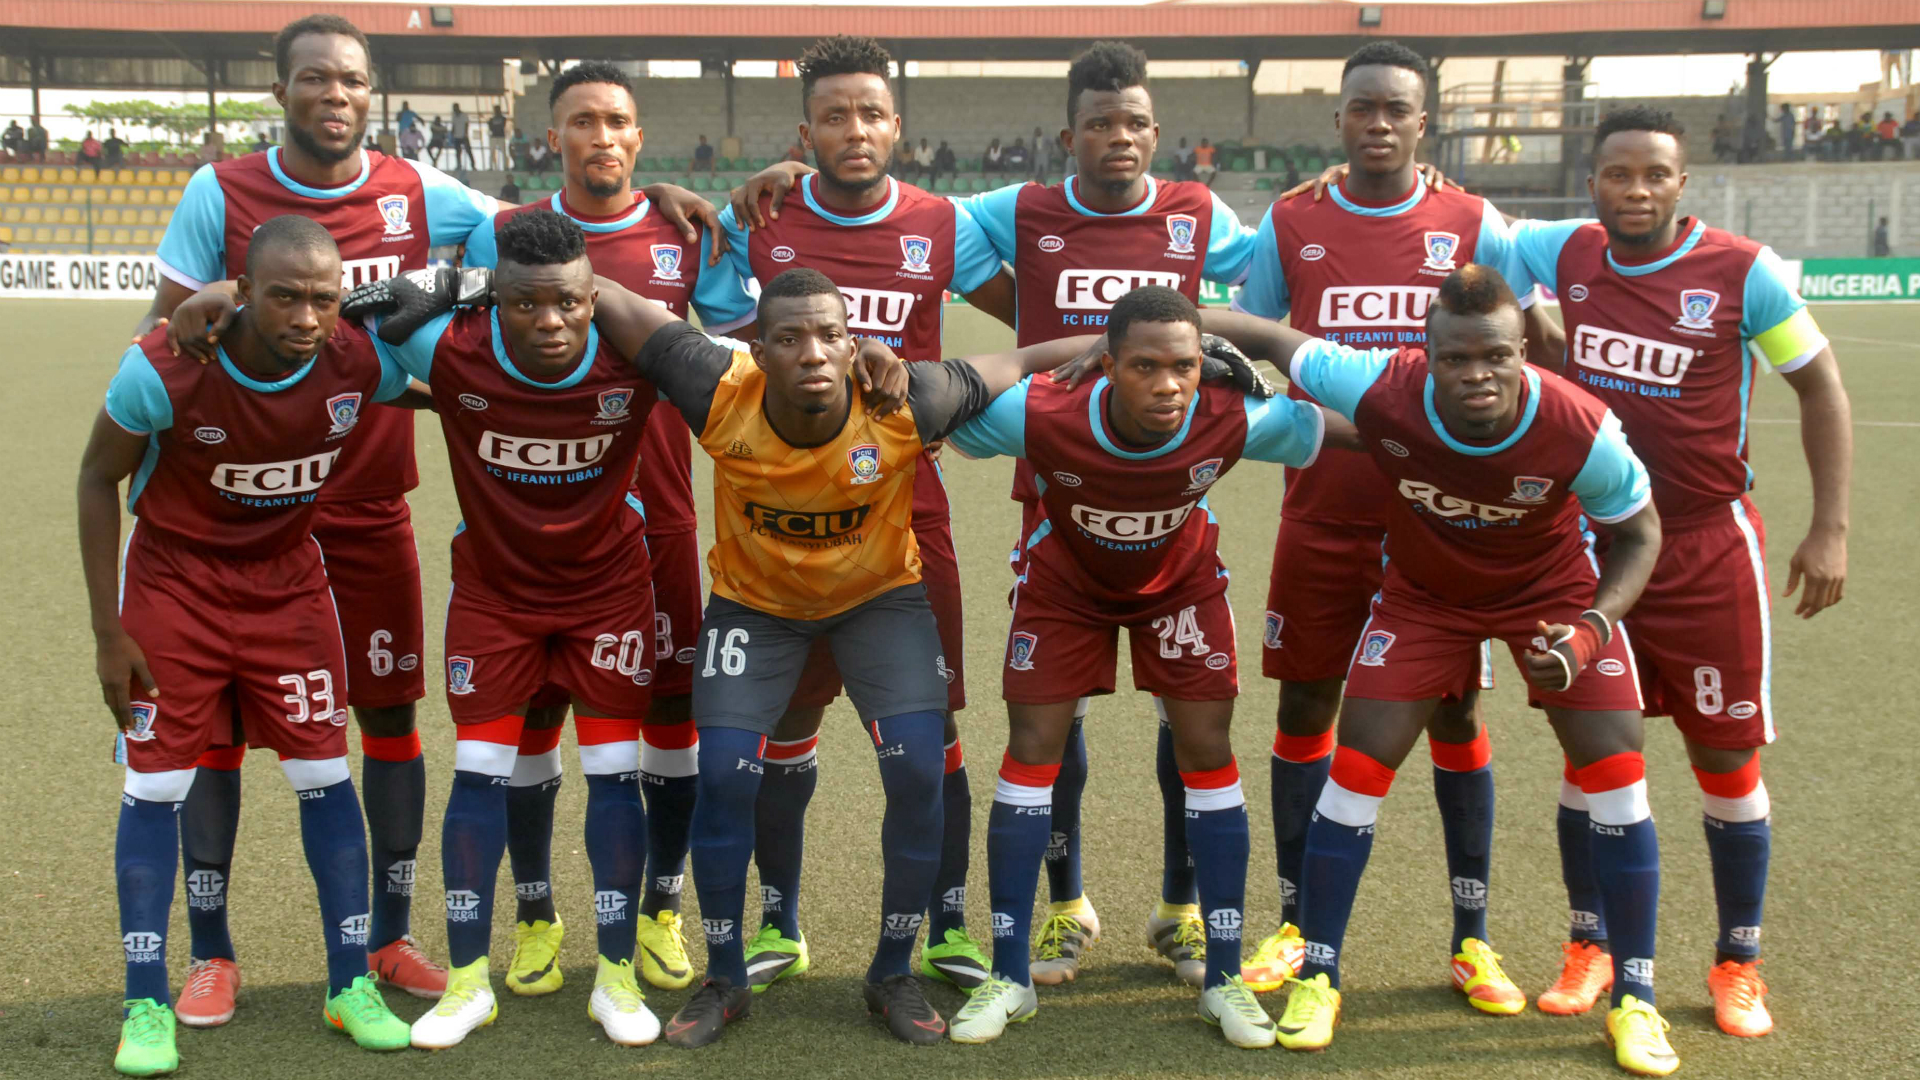 FC Ifeanyi Ubah players and coaches 'critically injured' after armed robbery attack | Goal.com